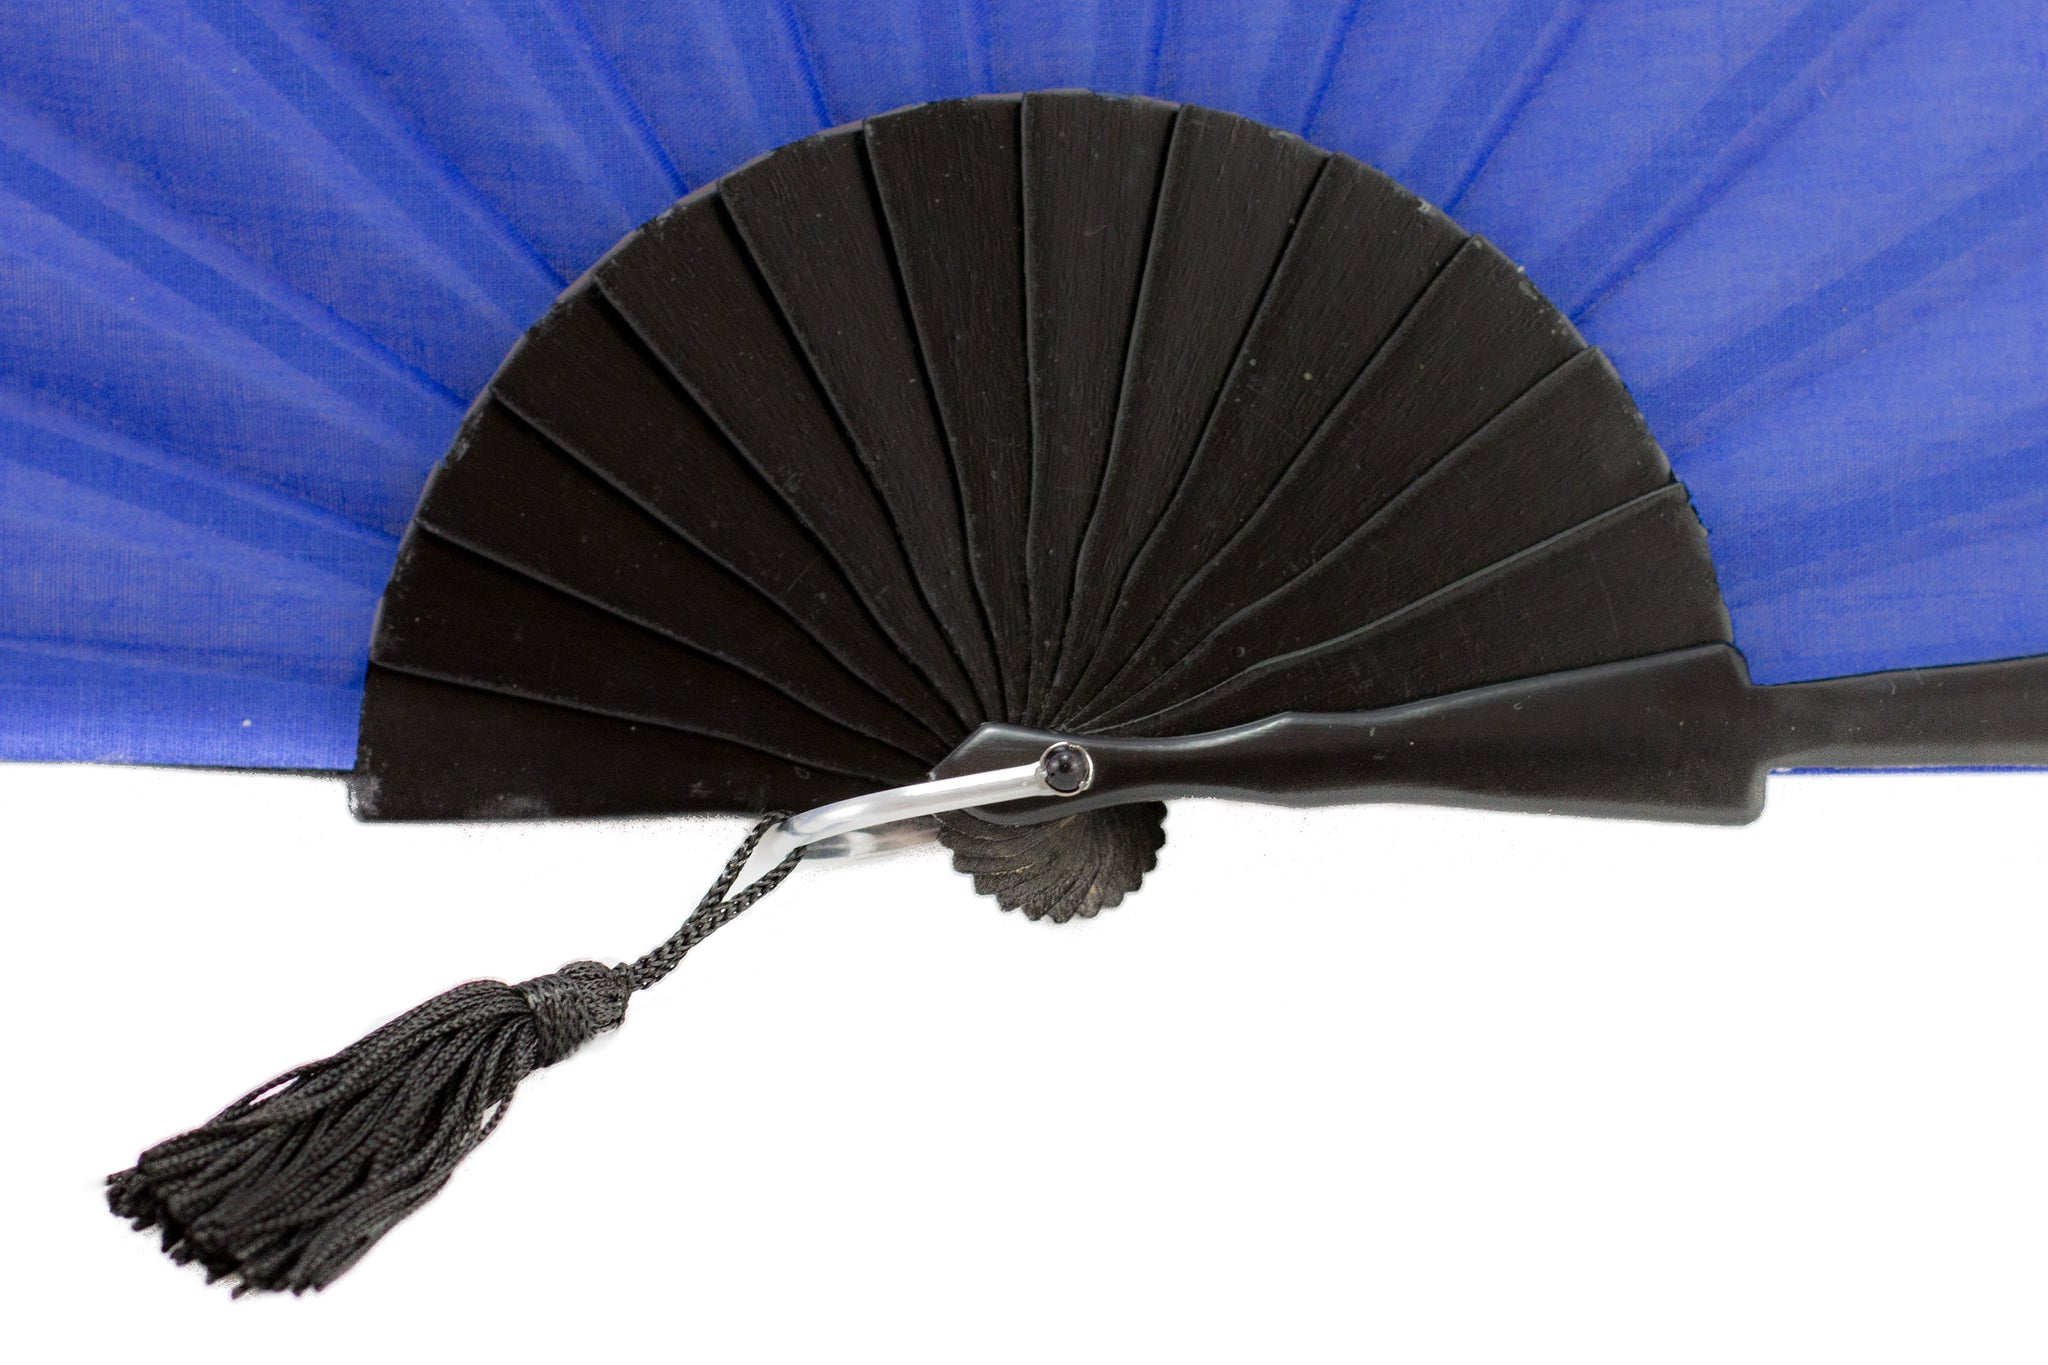 Glastonbury festival Blue hand fan detail